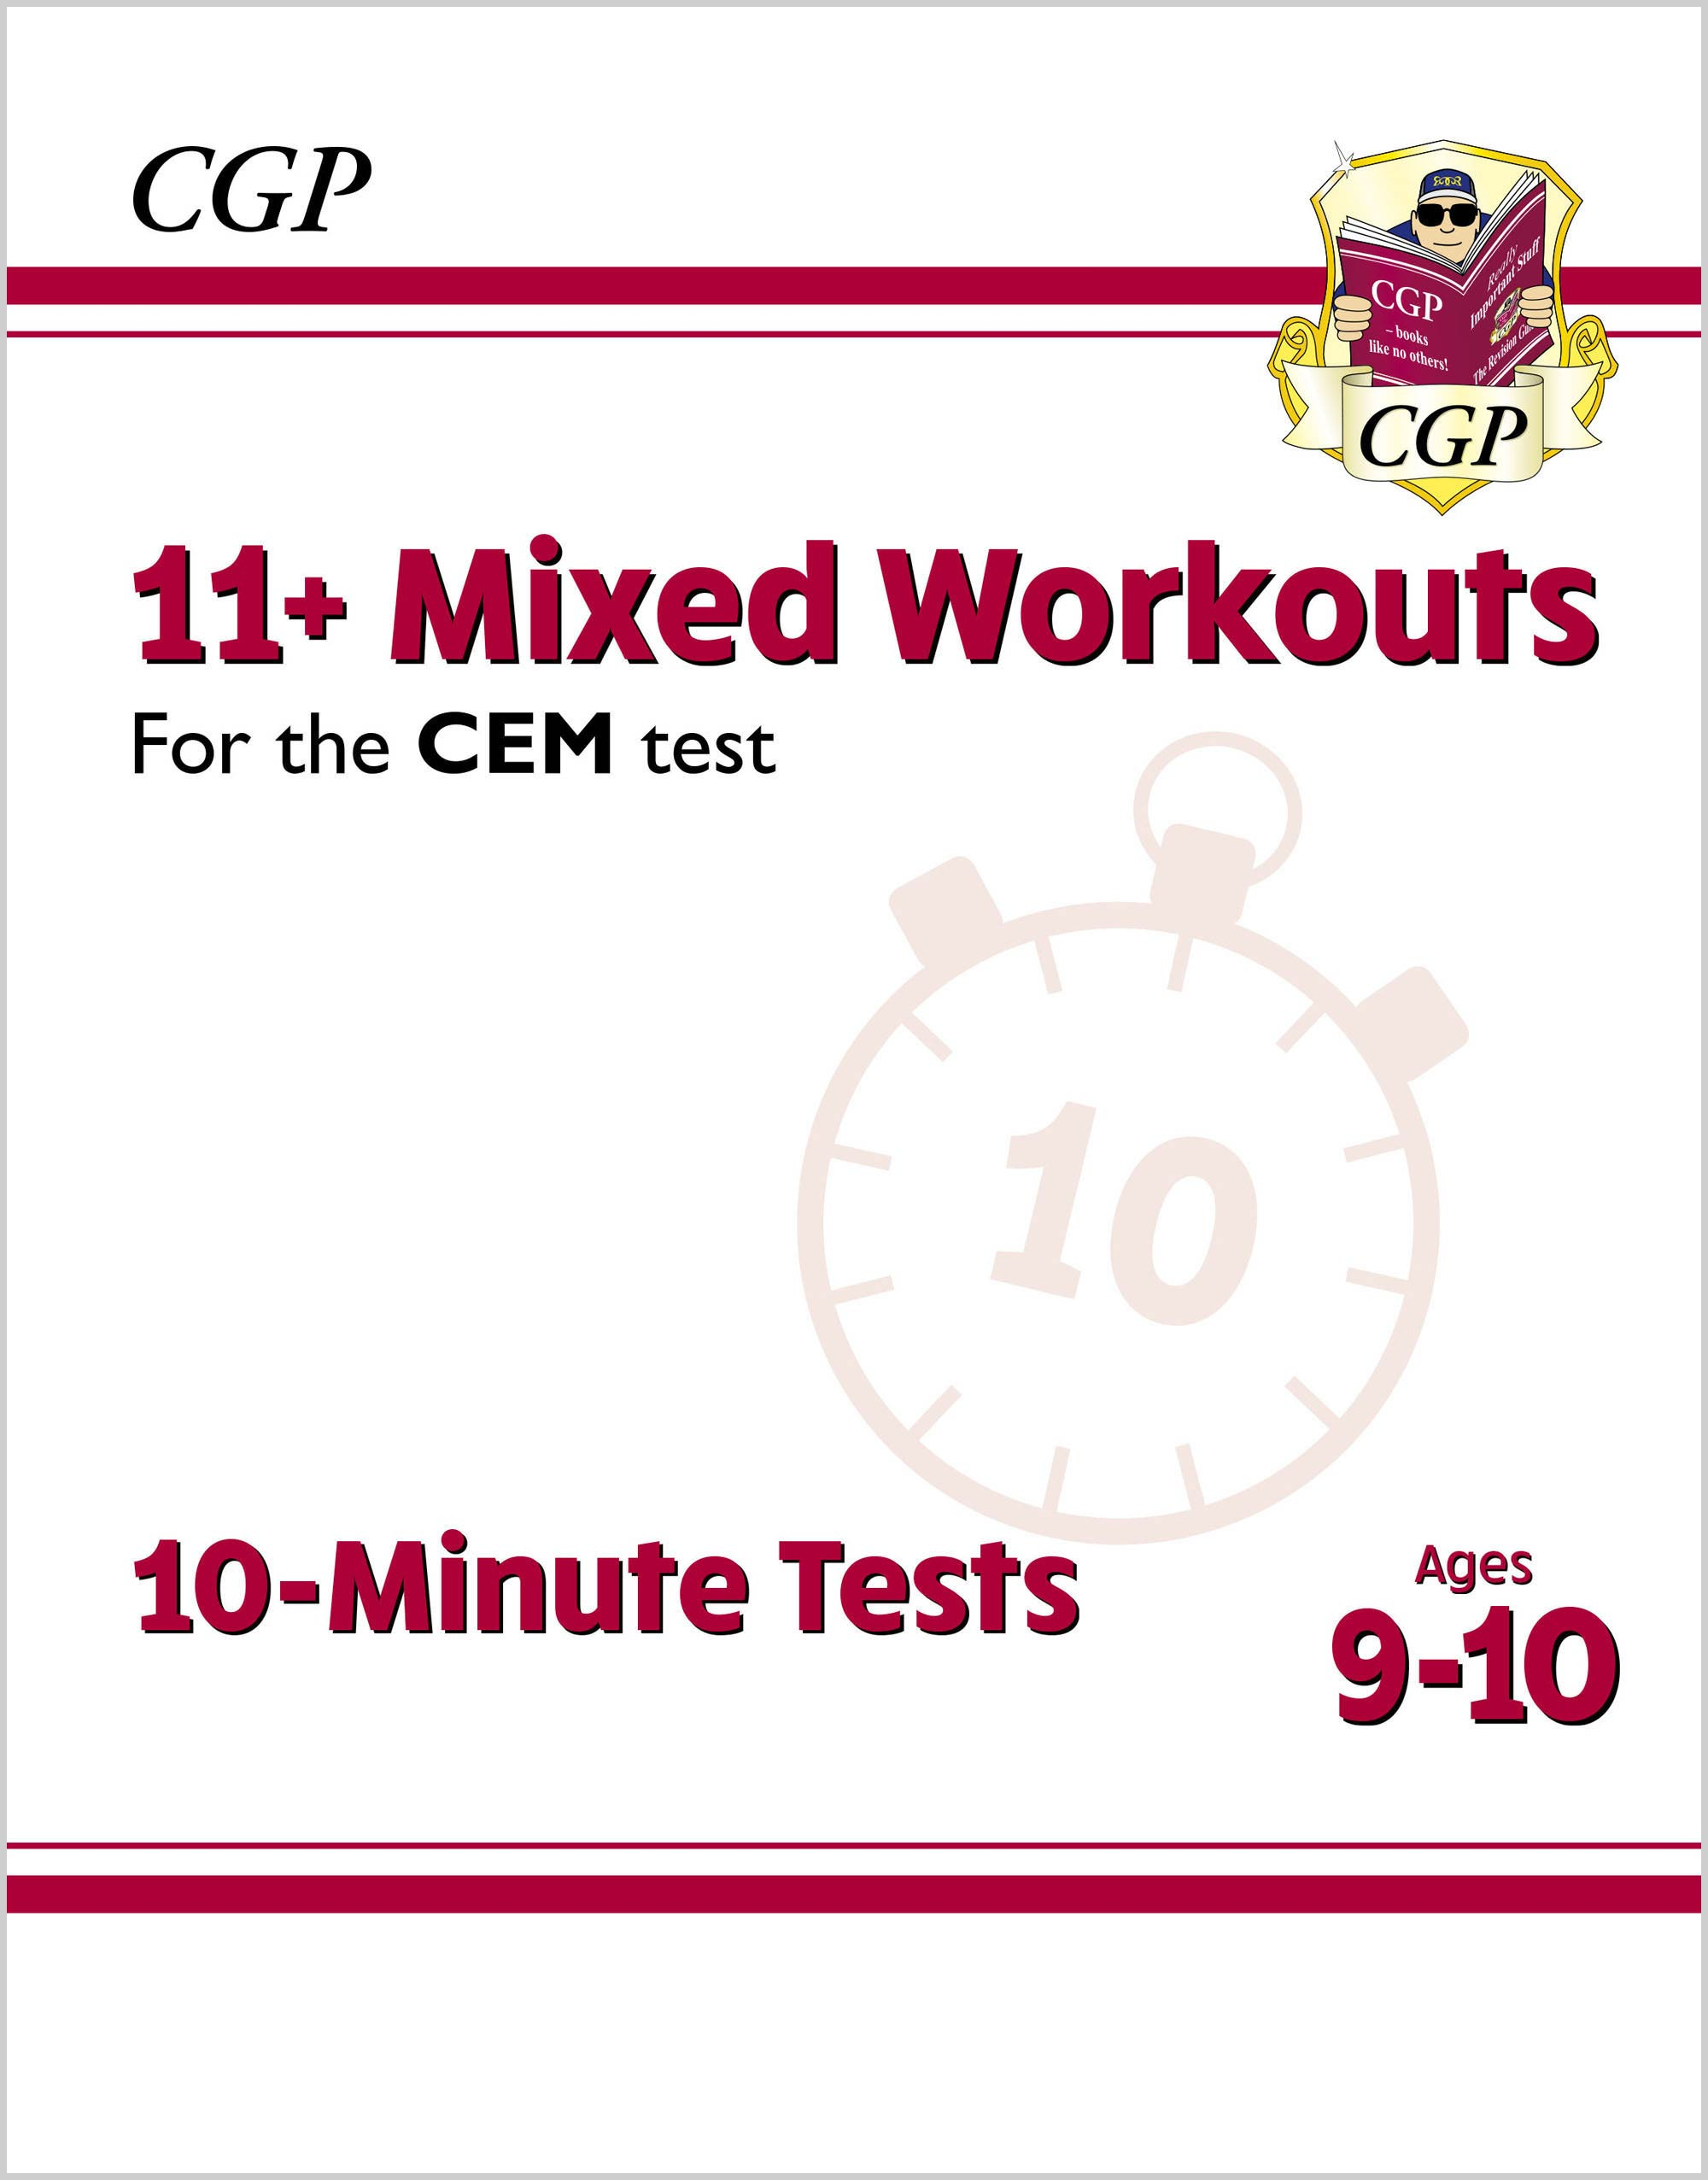 L5XWDE2DK - New 11+ CEM 10-Minute Tests: Mixed Workouts - Ages 9-10